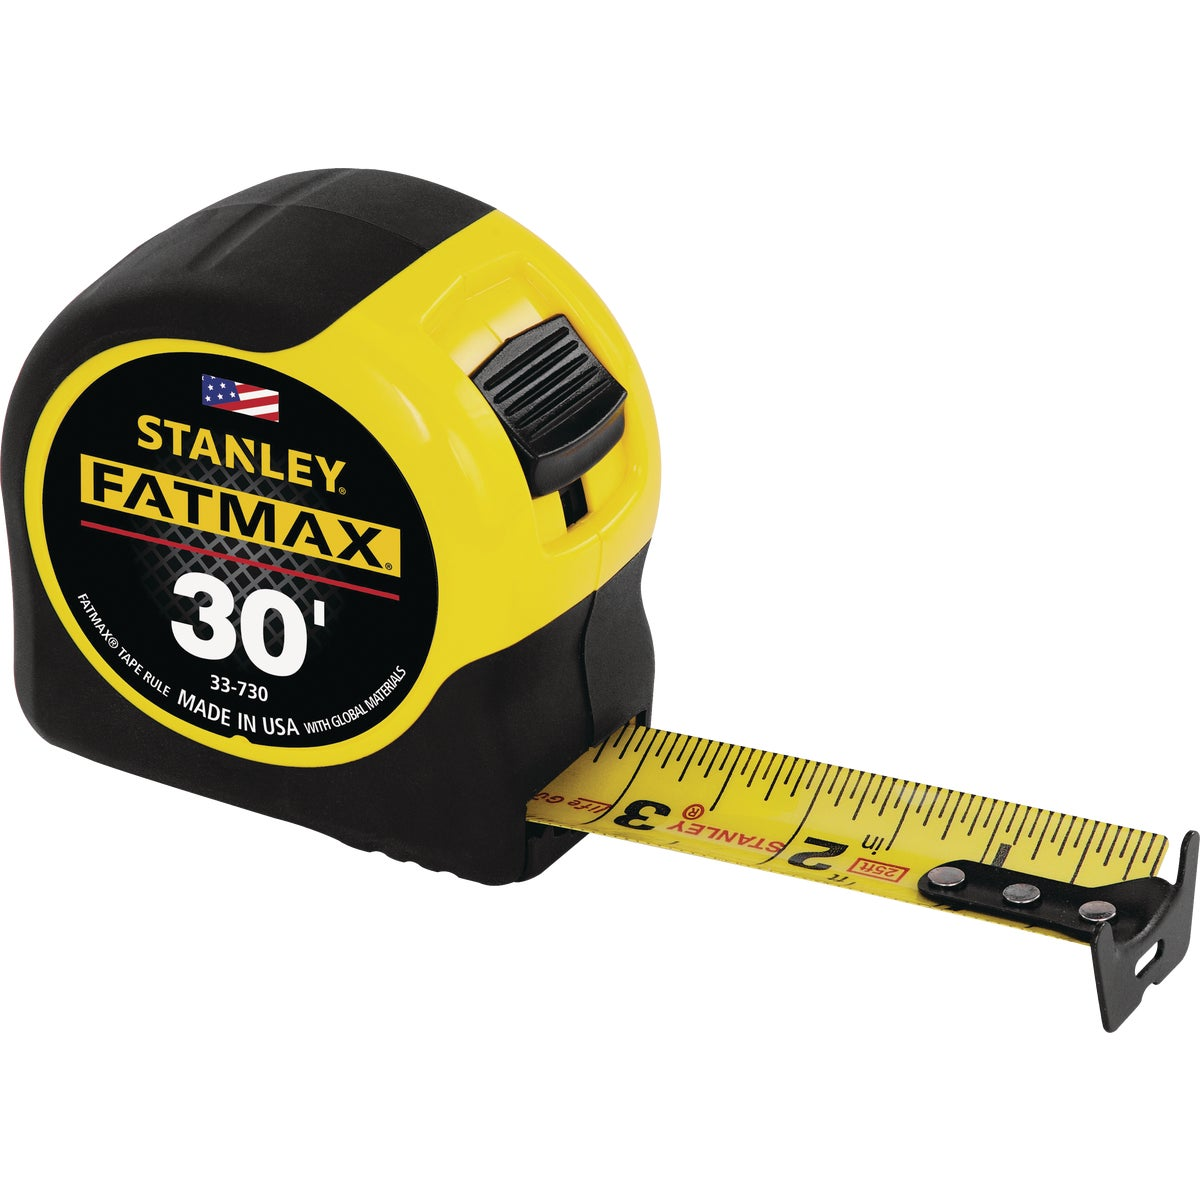 "1-1/4""X30' TAPE RULE - 33-730 by Stanley Tools"